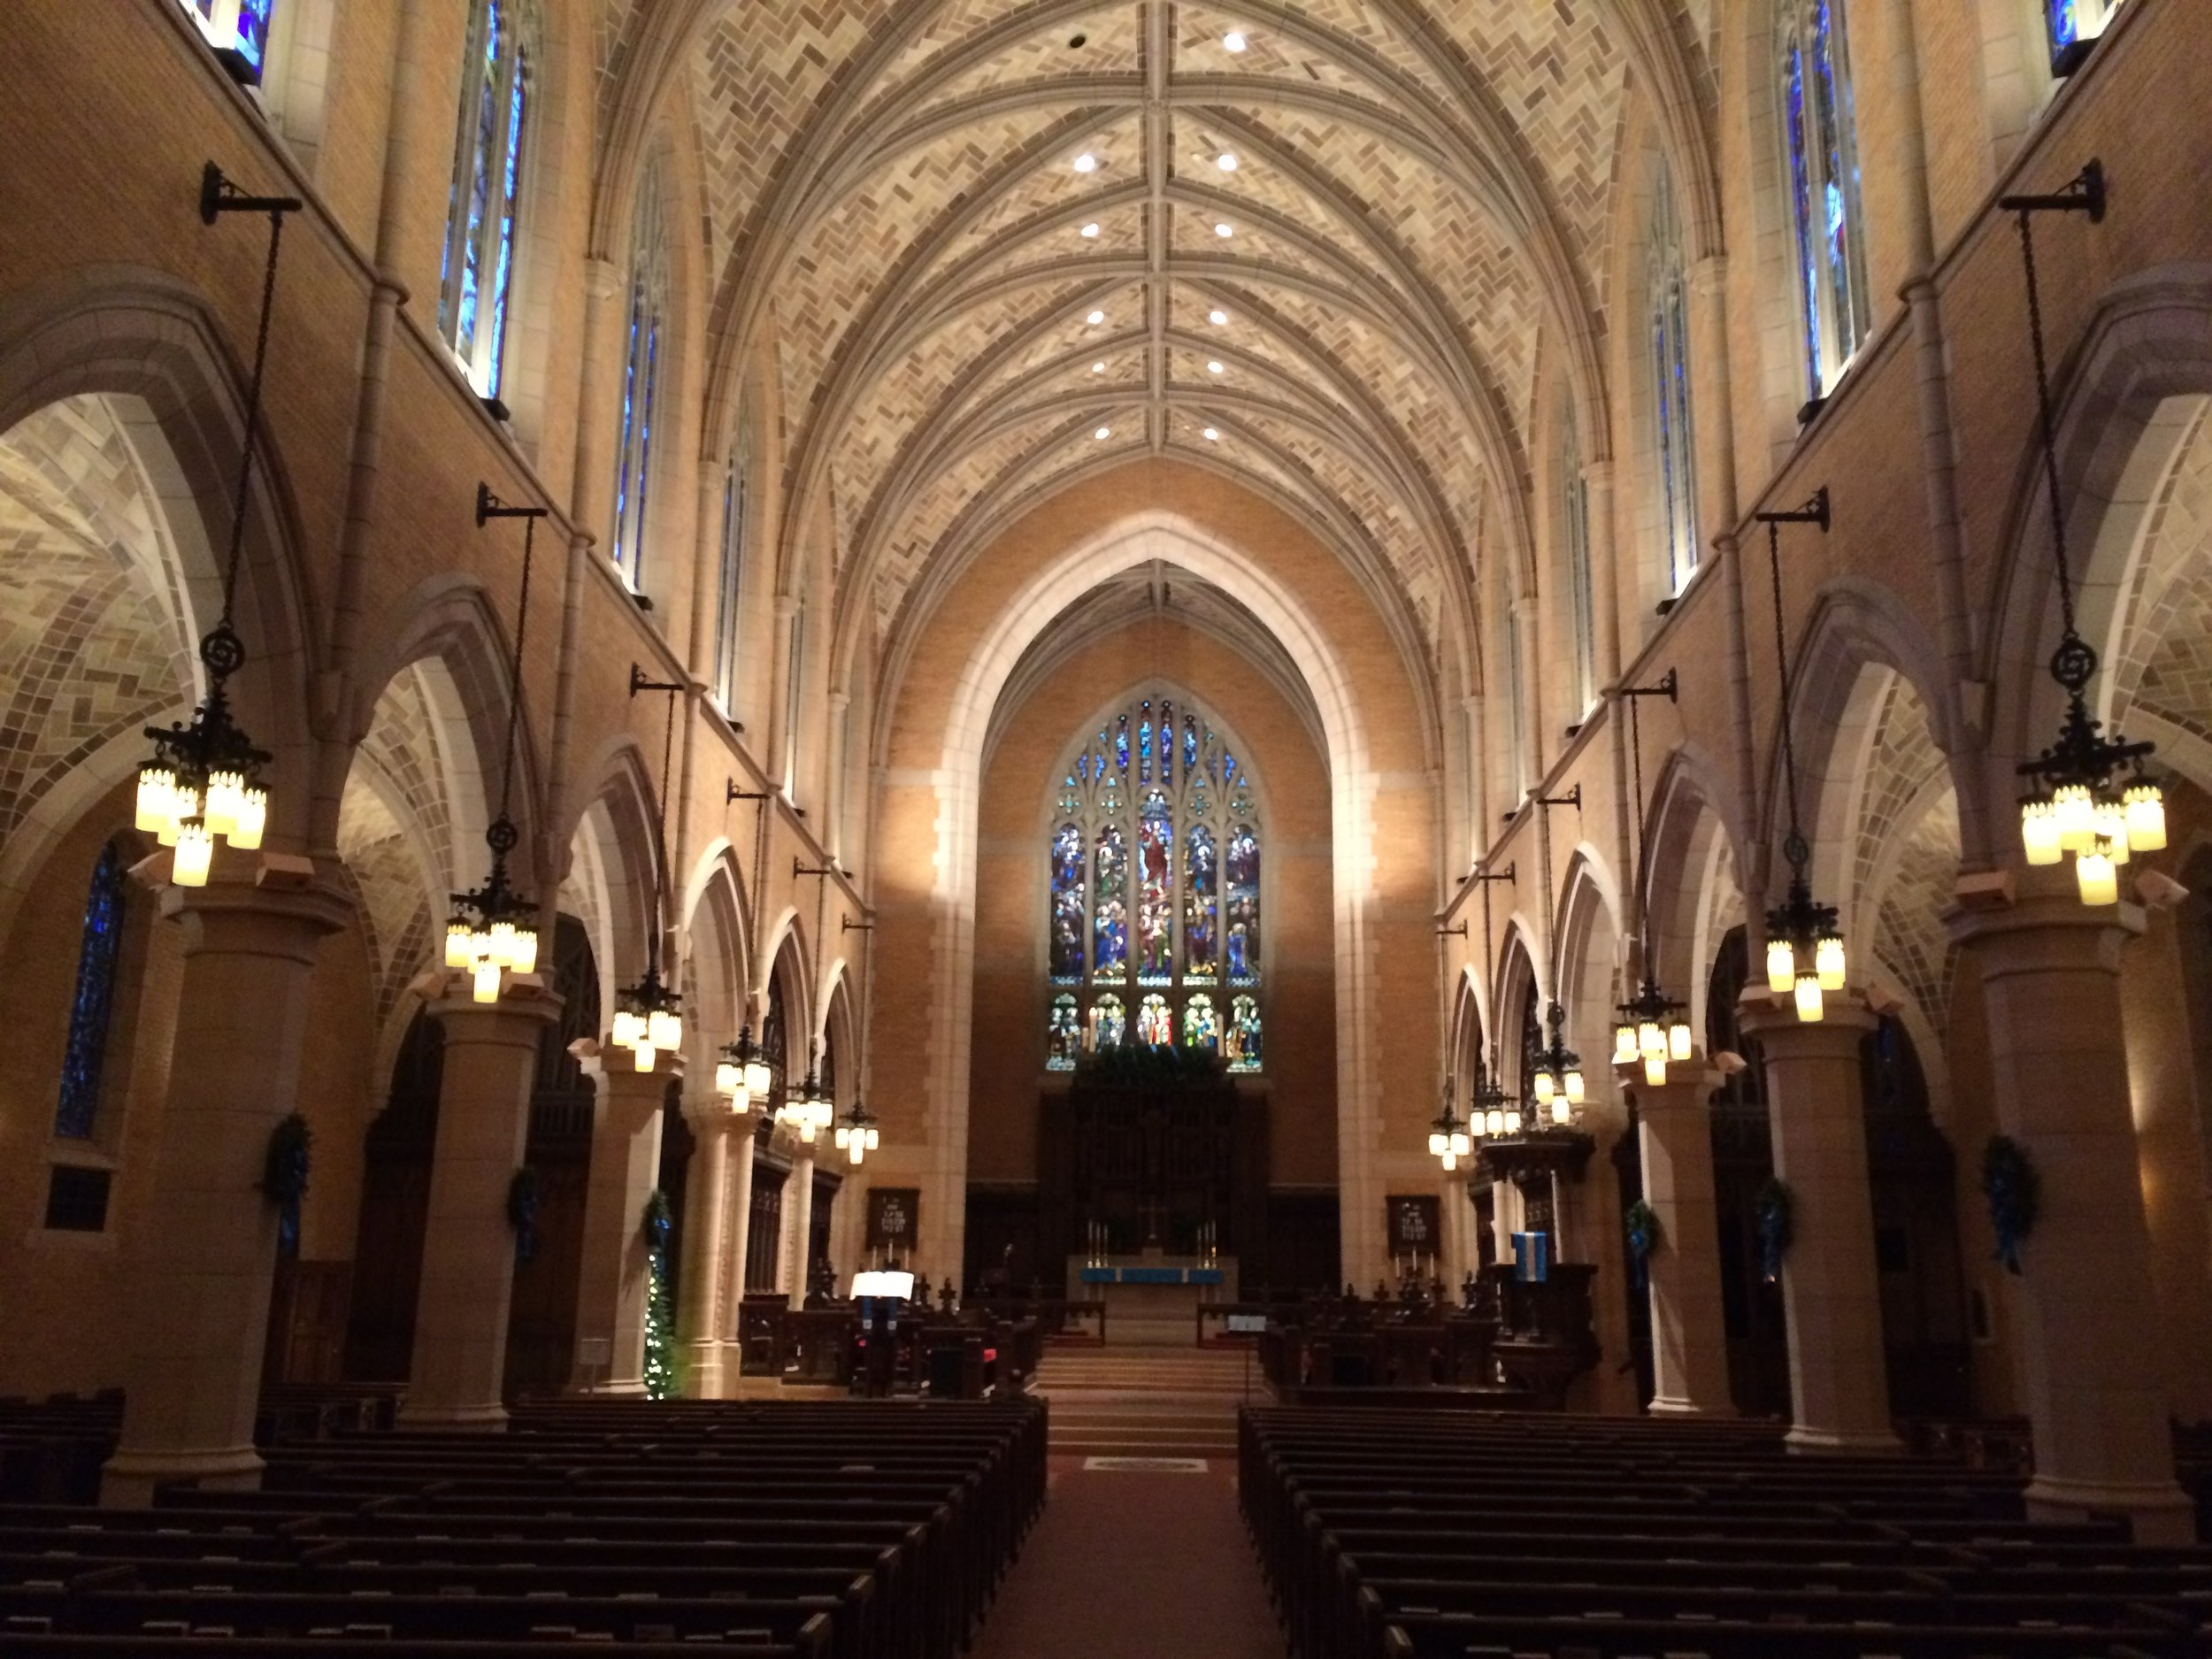 Saint Mark's Episcopal Cathedral - Experience the majesty of this historic cathedral and discover their story through the 35 stained glass windows, the sounds of the 5,500-pipe organ, and a scavenger hunt for children 12 and younger. Guided tours available all day Saturday and from 12:30–5:00 pm on Sunday.